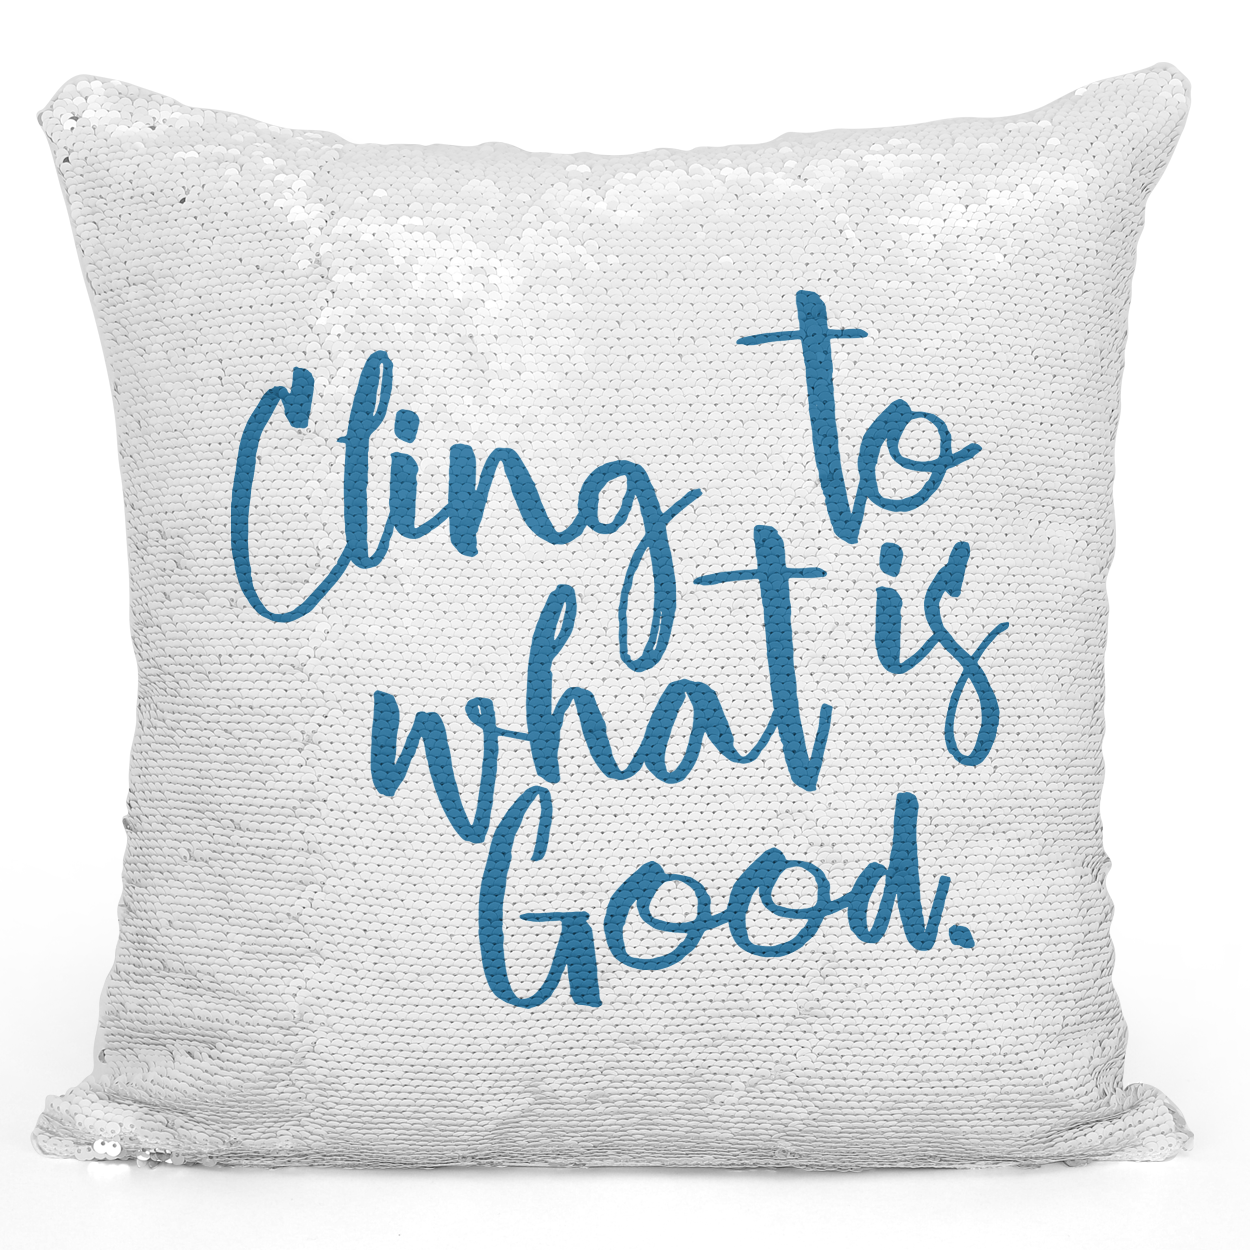 16x16 inch Sequin Throw Pillow Magic Flip Pillow Cling To What Is Good Pillow With Words Loud Universe